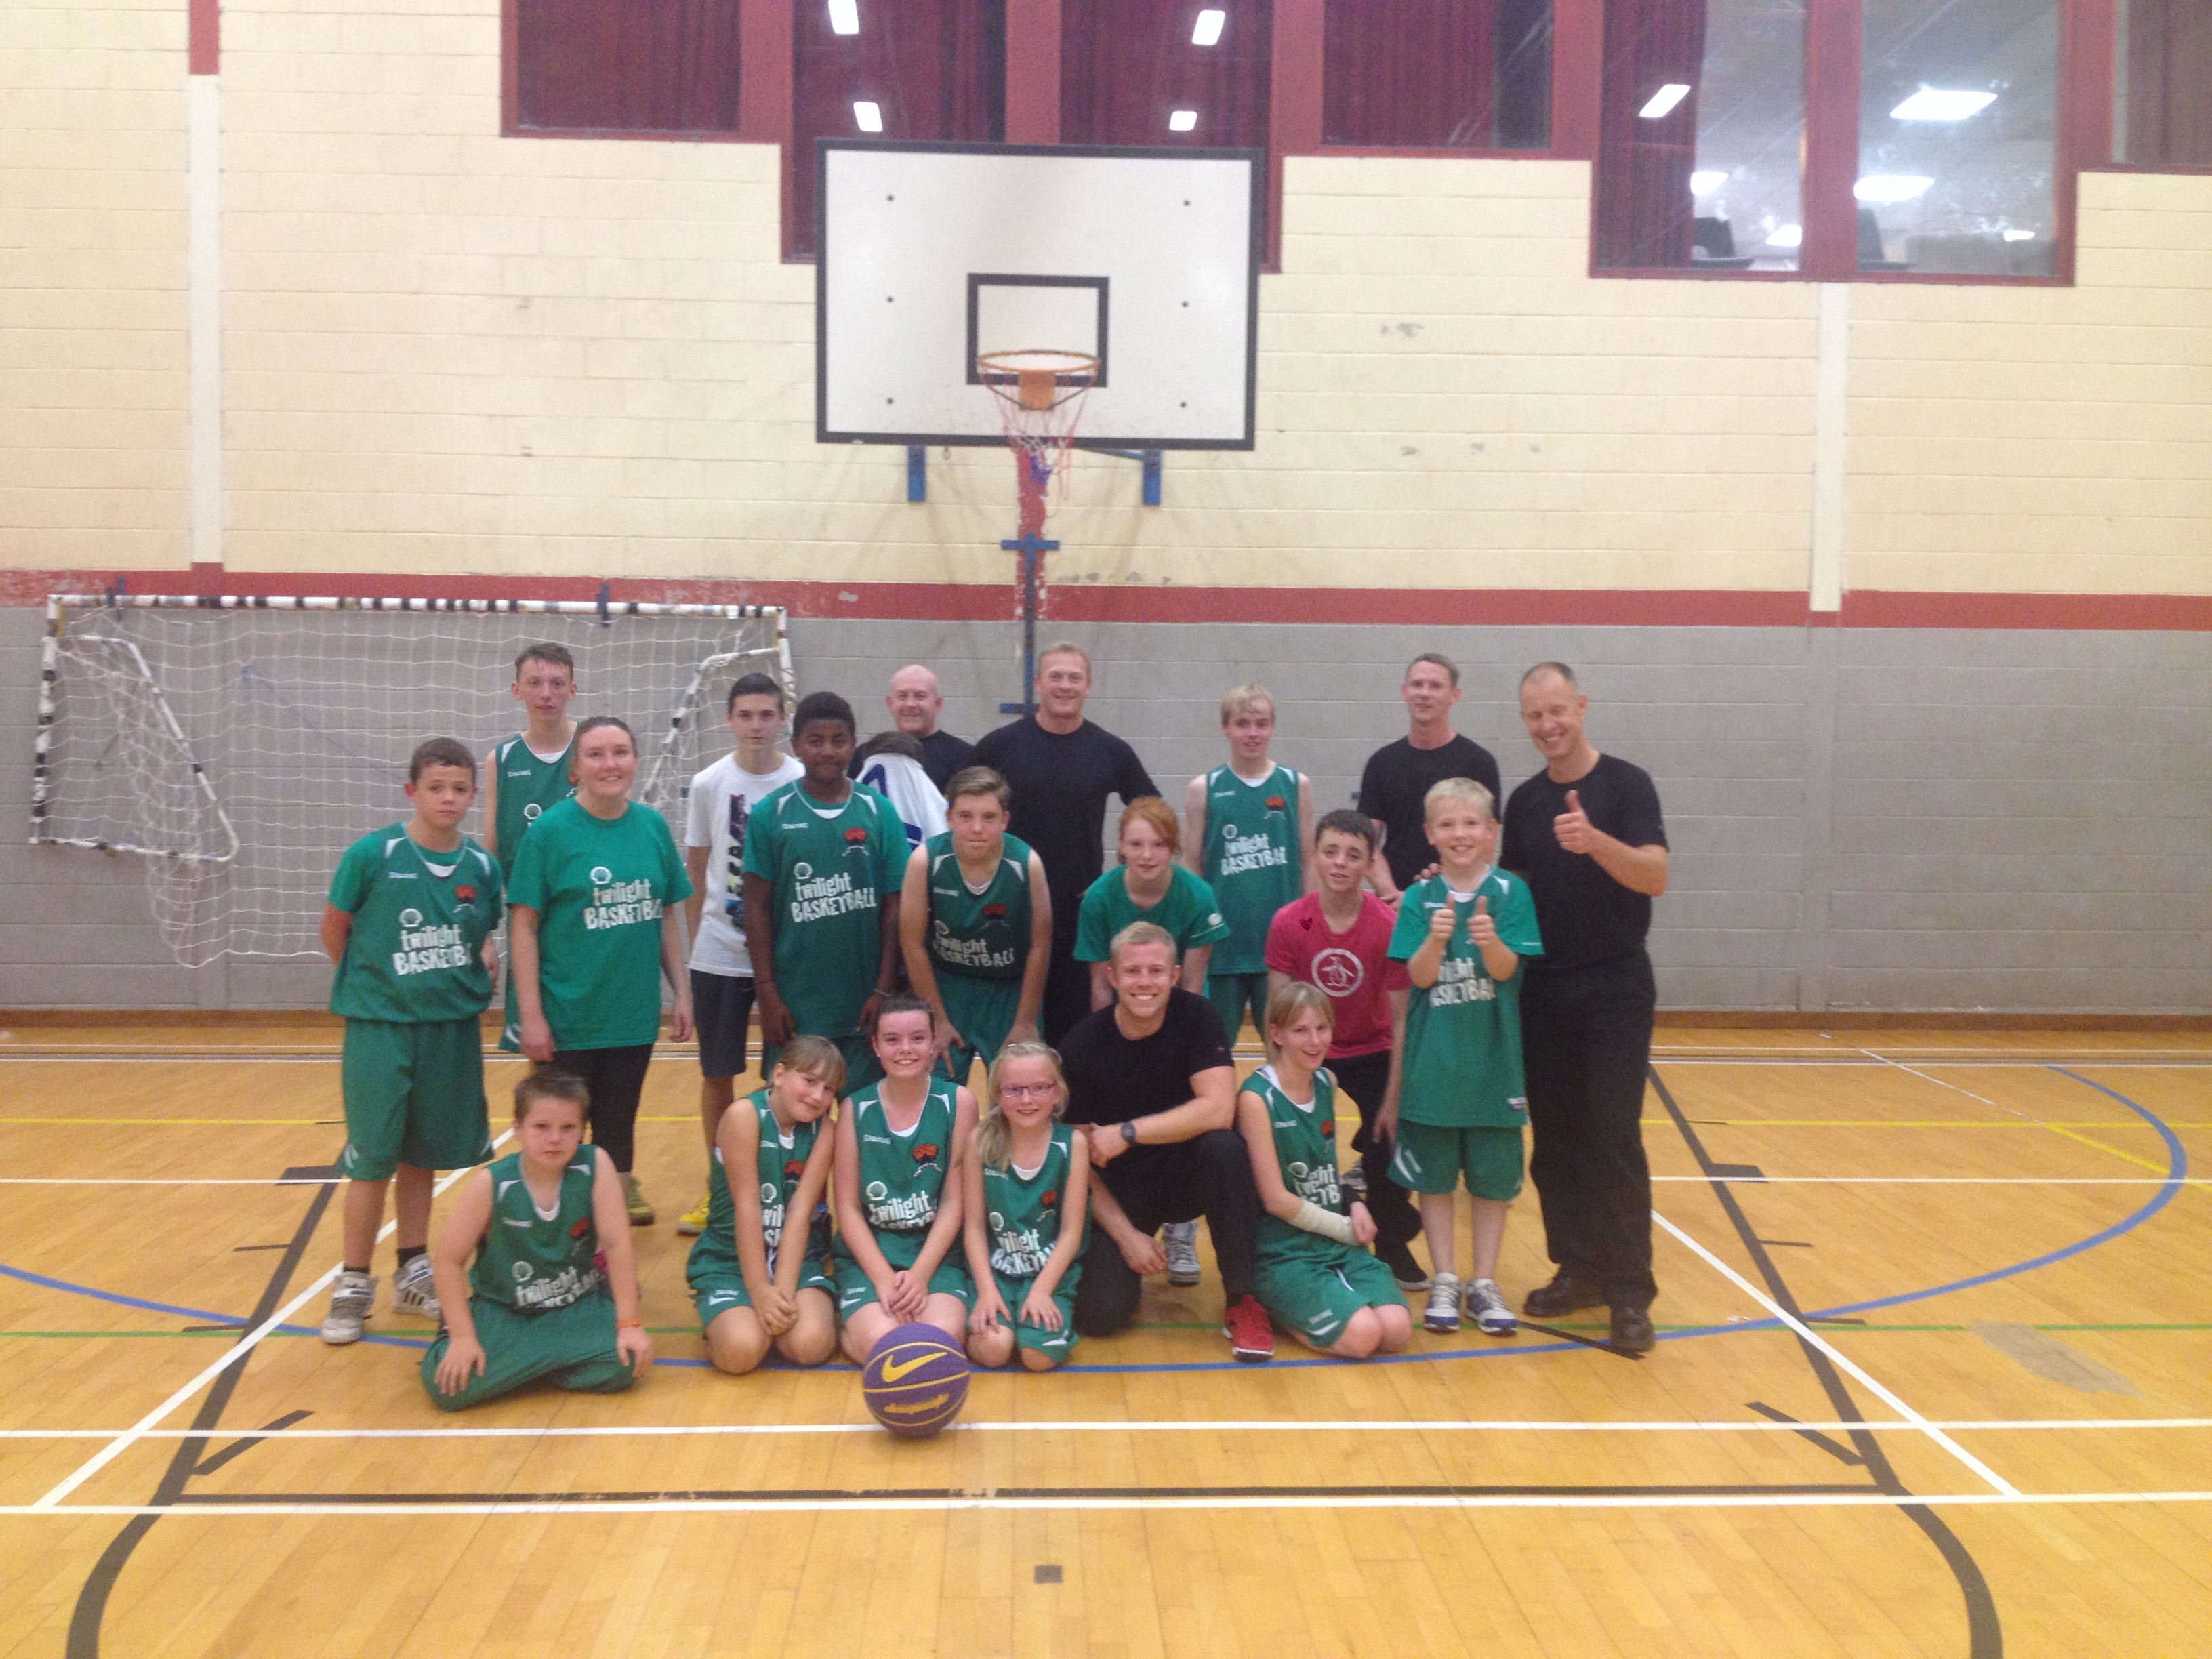 Lochgelly crew take on the basketball challenge